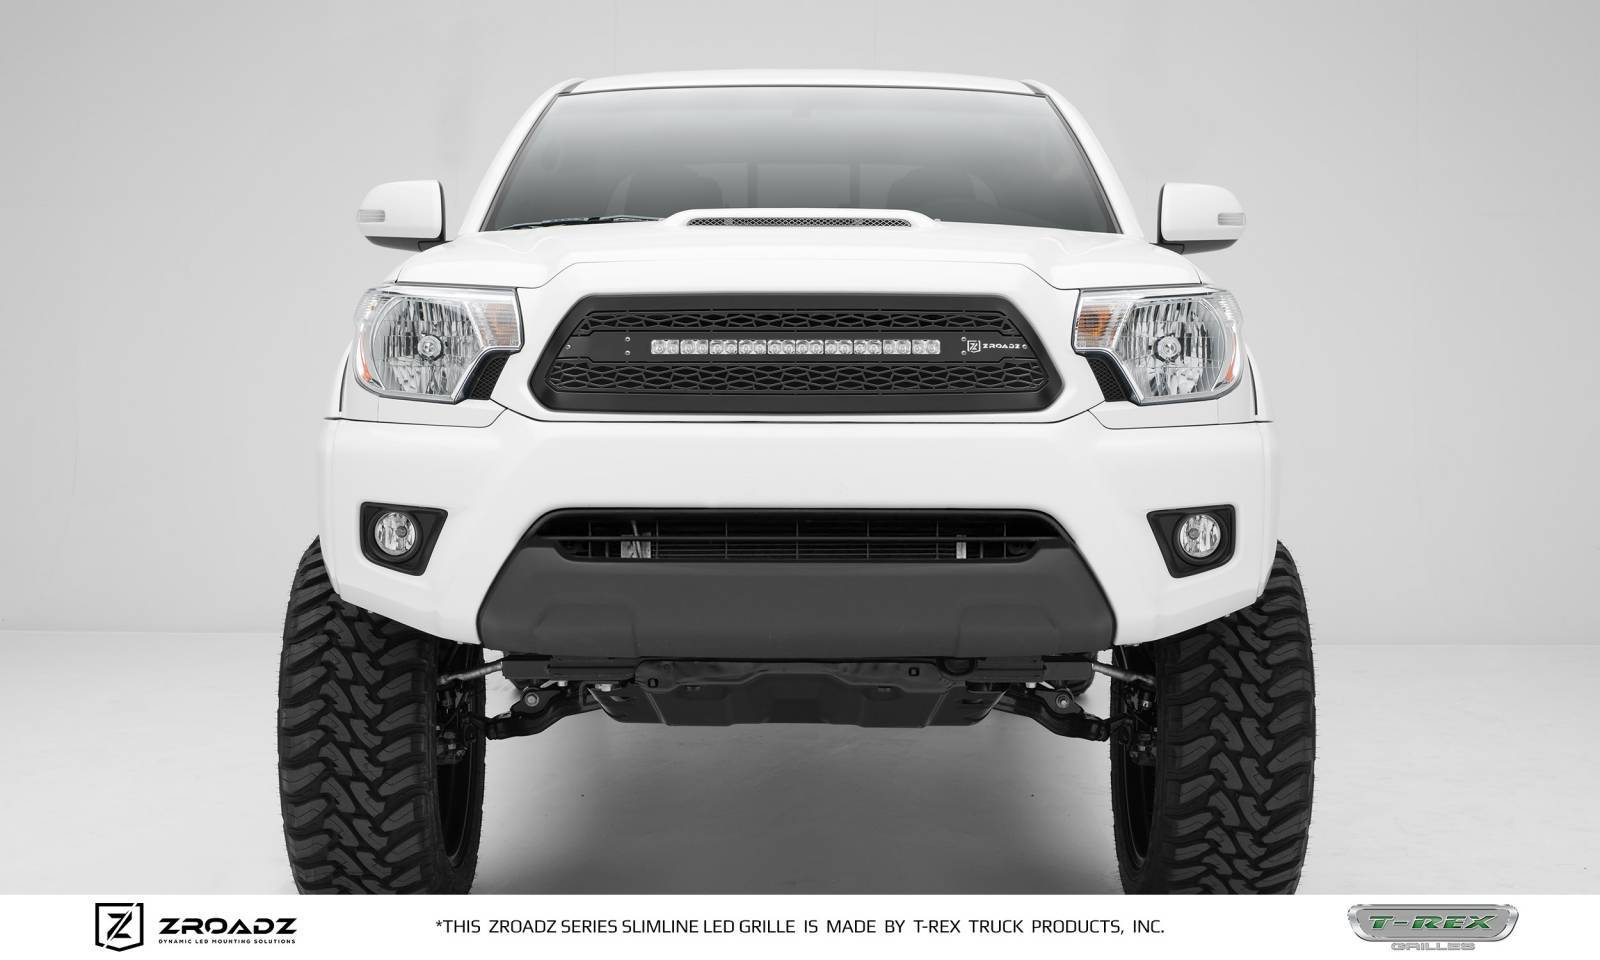 T-REX Grilles - Toyota Tacoma - ZROADZ Series - Main Insert - Grille w/ One 20 Inch Slim Line Single Row LED Light Bar  - Part# Z319381